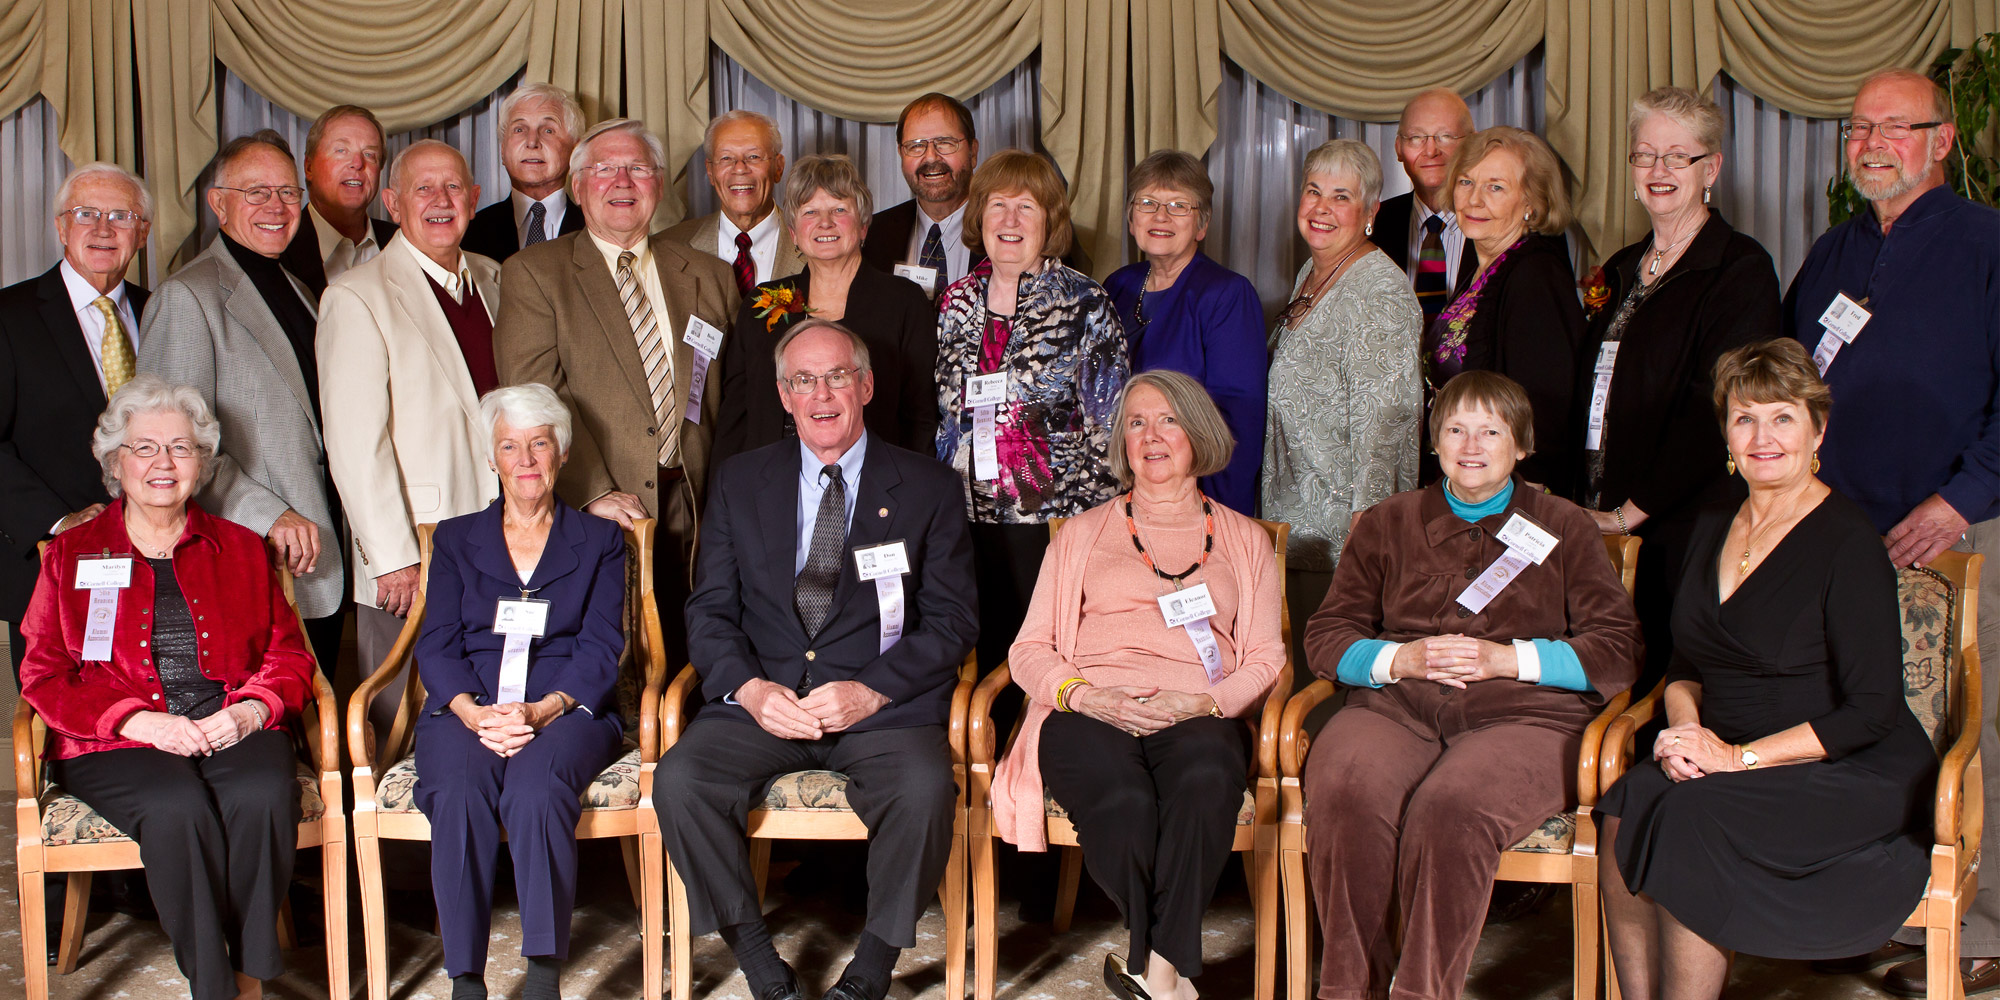 The class of 1962